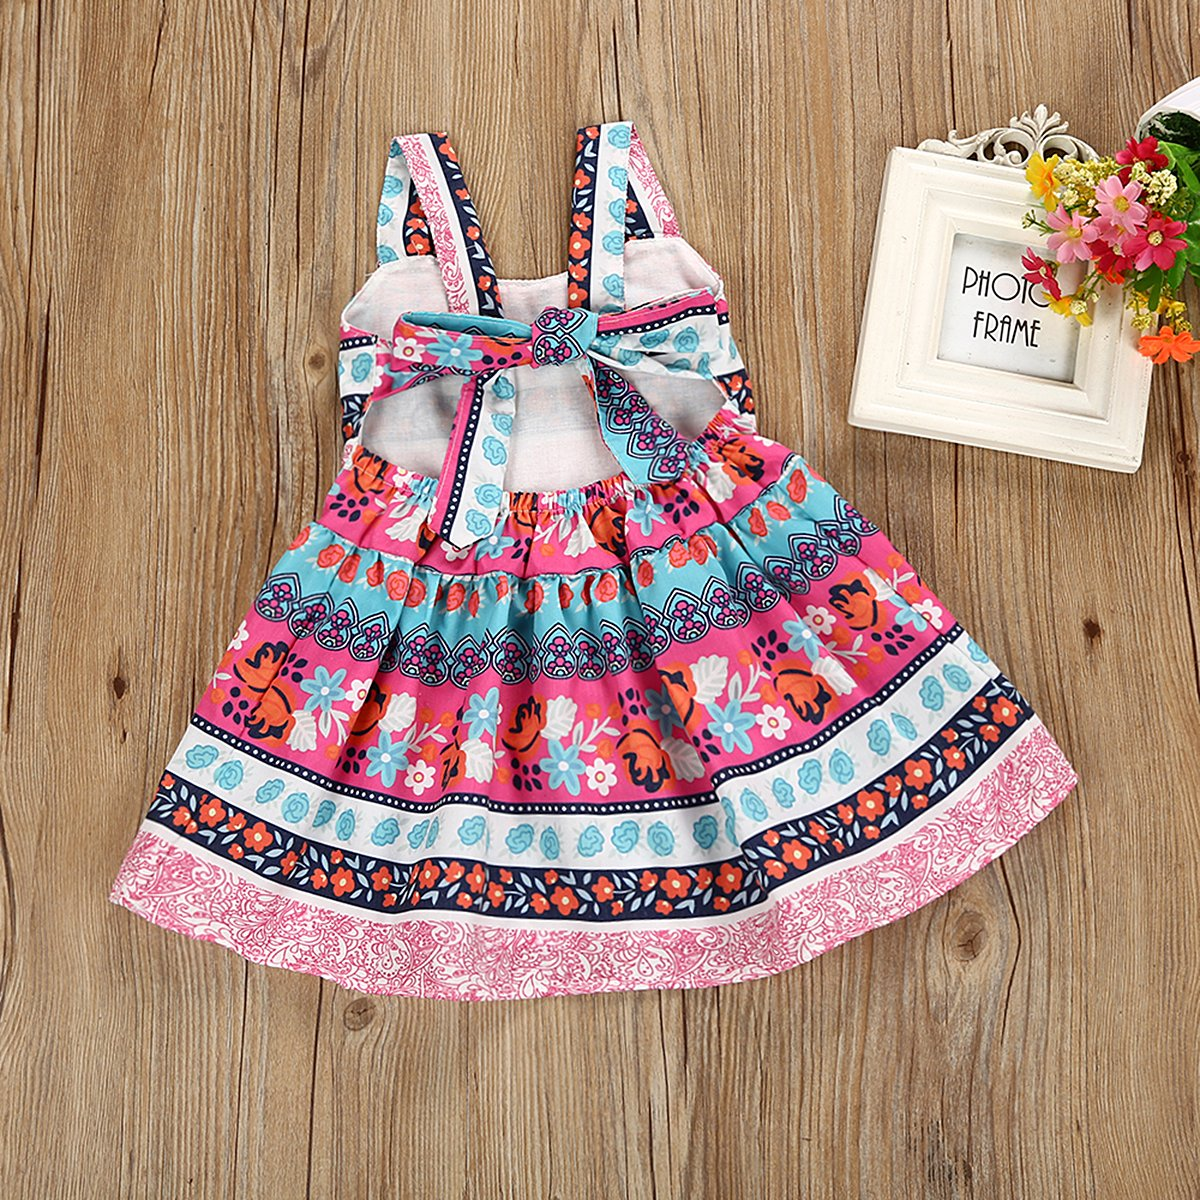 Camidy 1-5T Baby Toddler Girl Vintage Bohemian Floral Sundress Backless Strap Dress